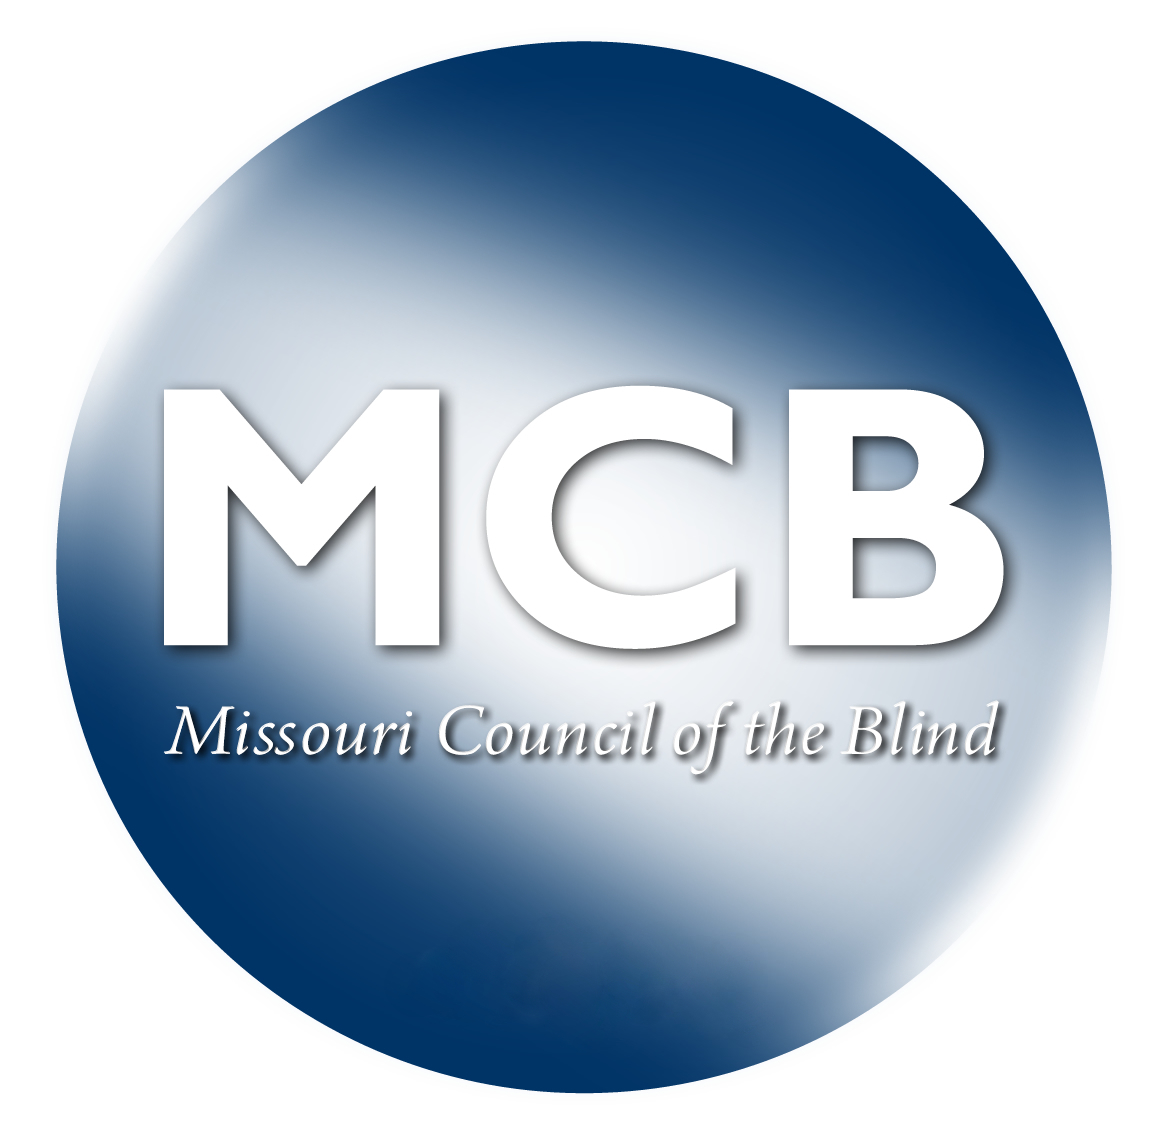 Missouri Council of the Blind